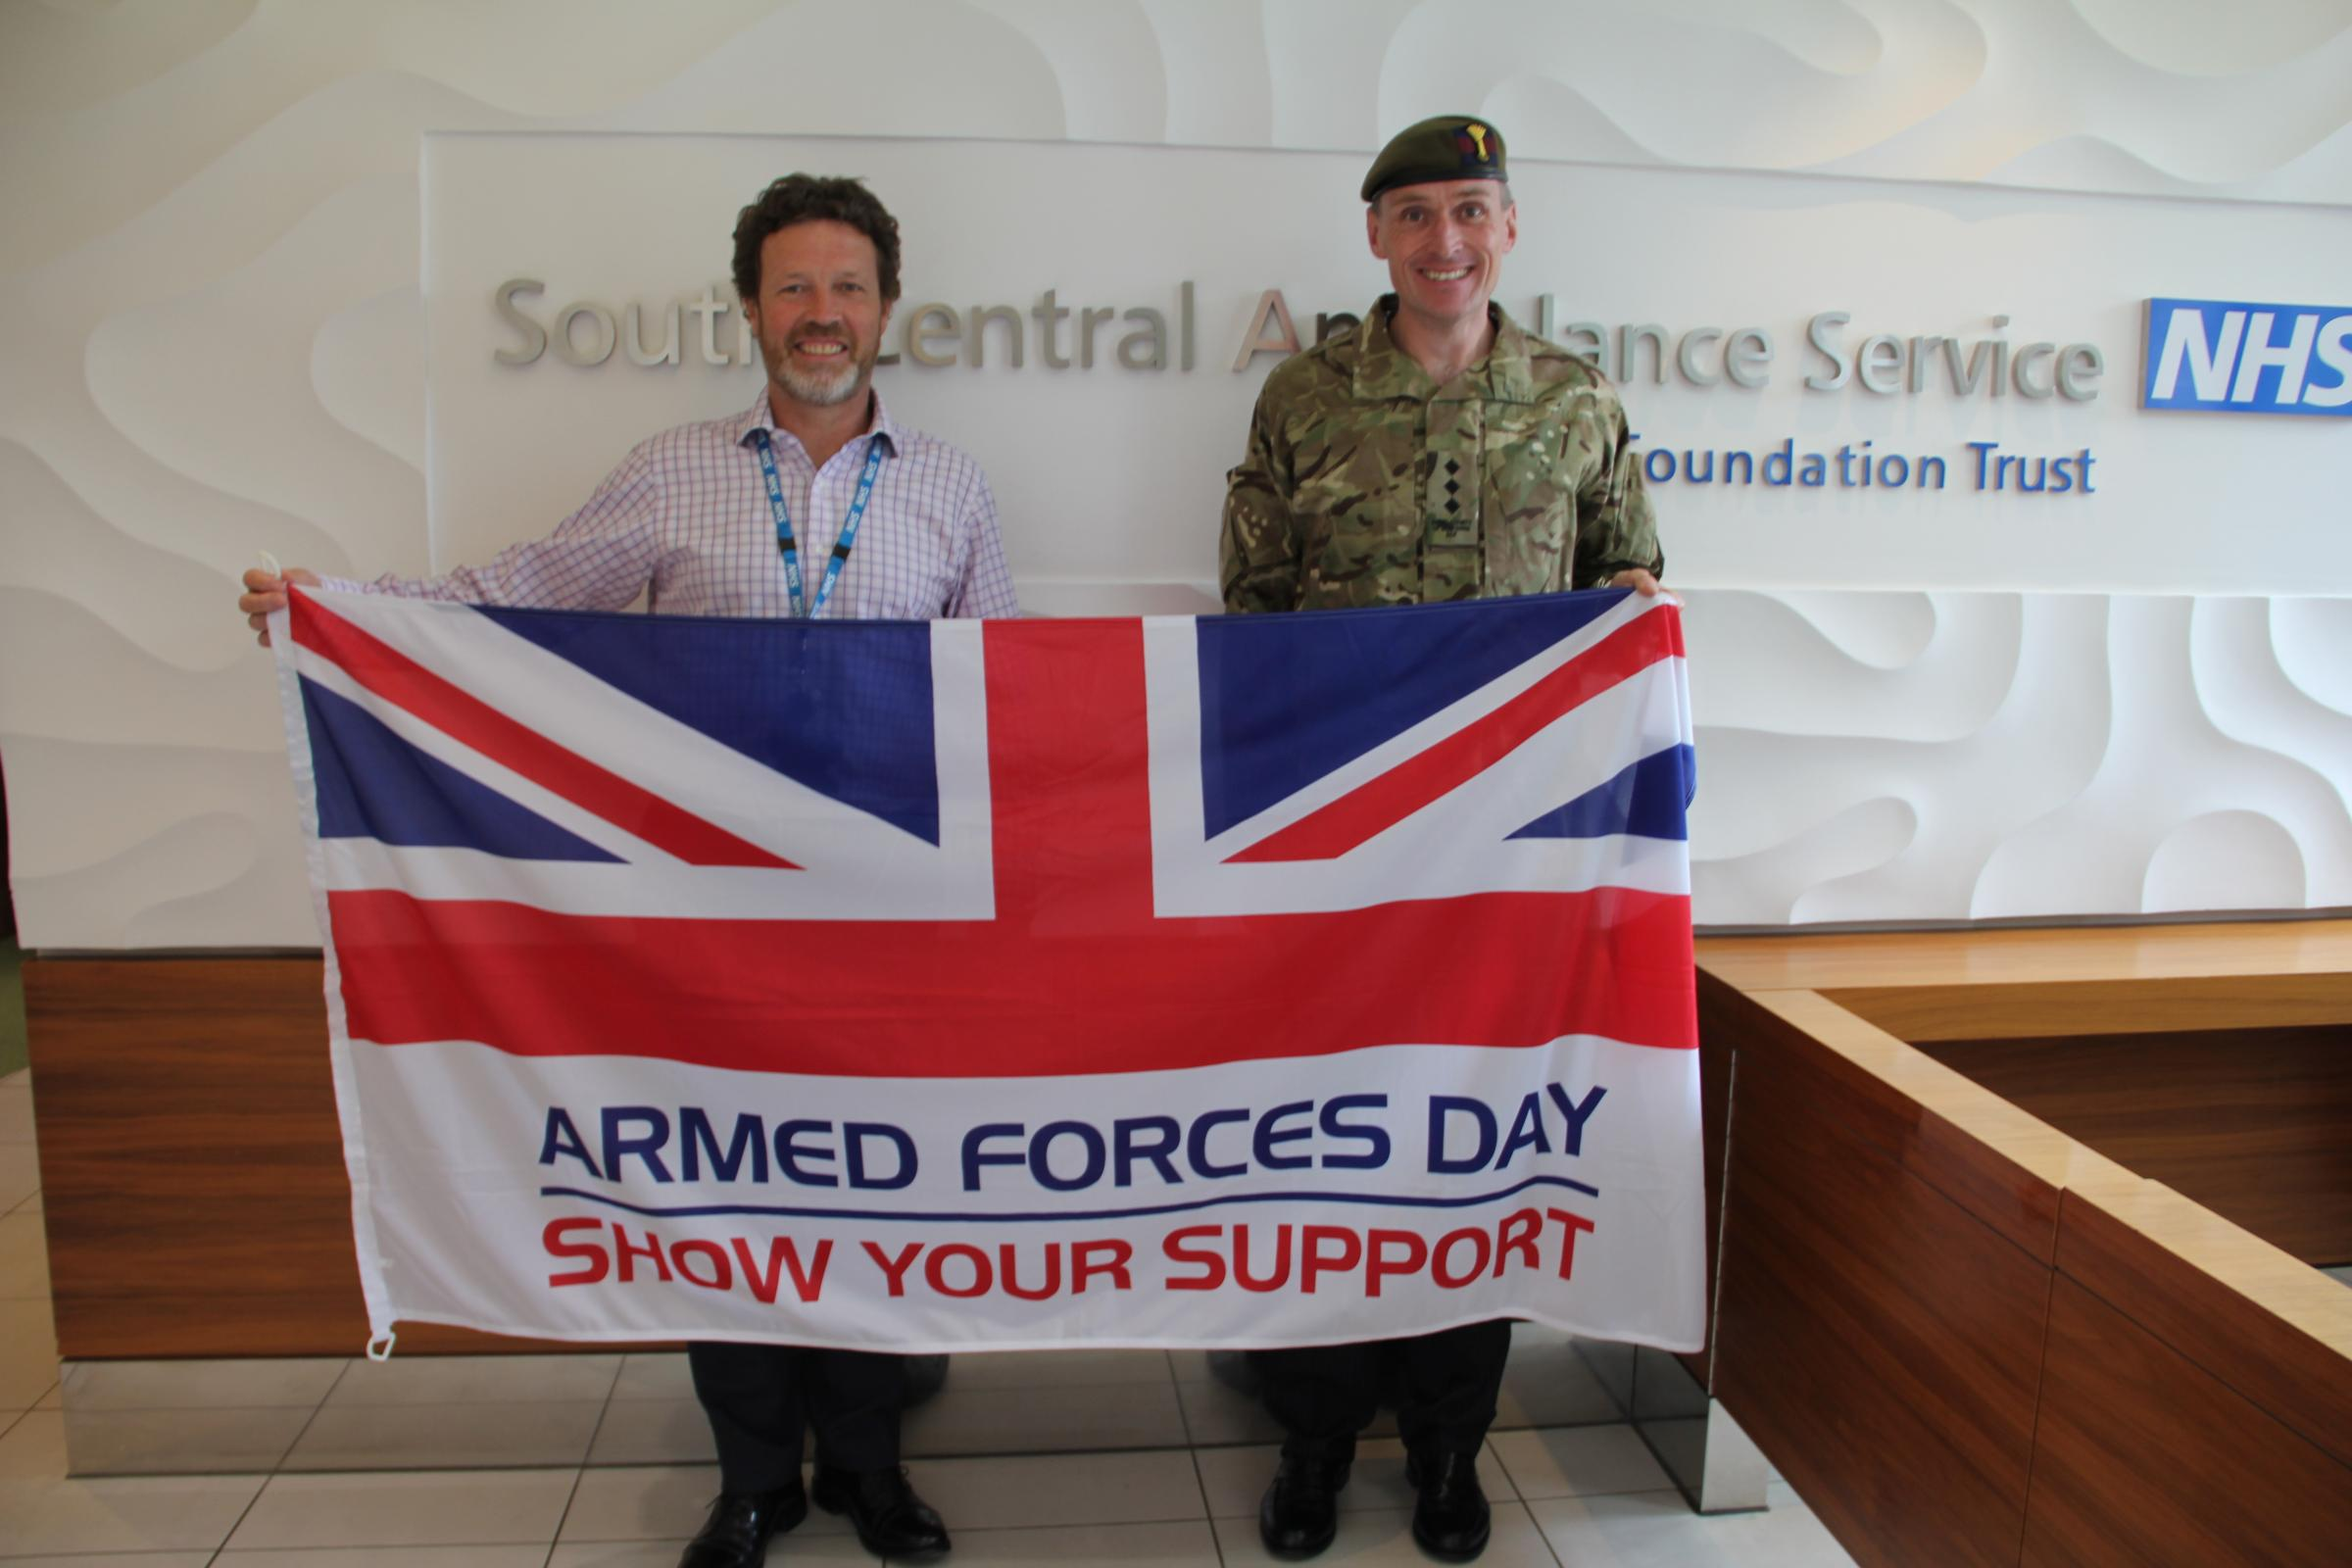 From left, SCAS Philip Astle, chief operating officer; with Paul Jefferies, assistant director of operations.